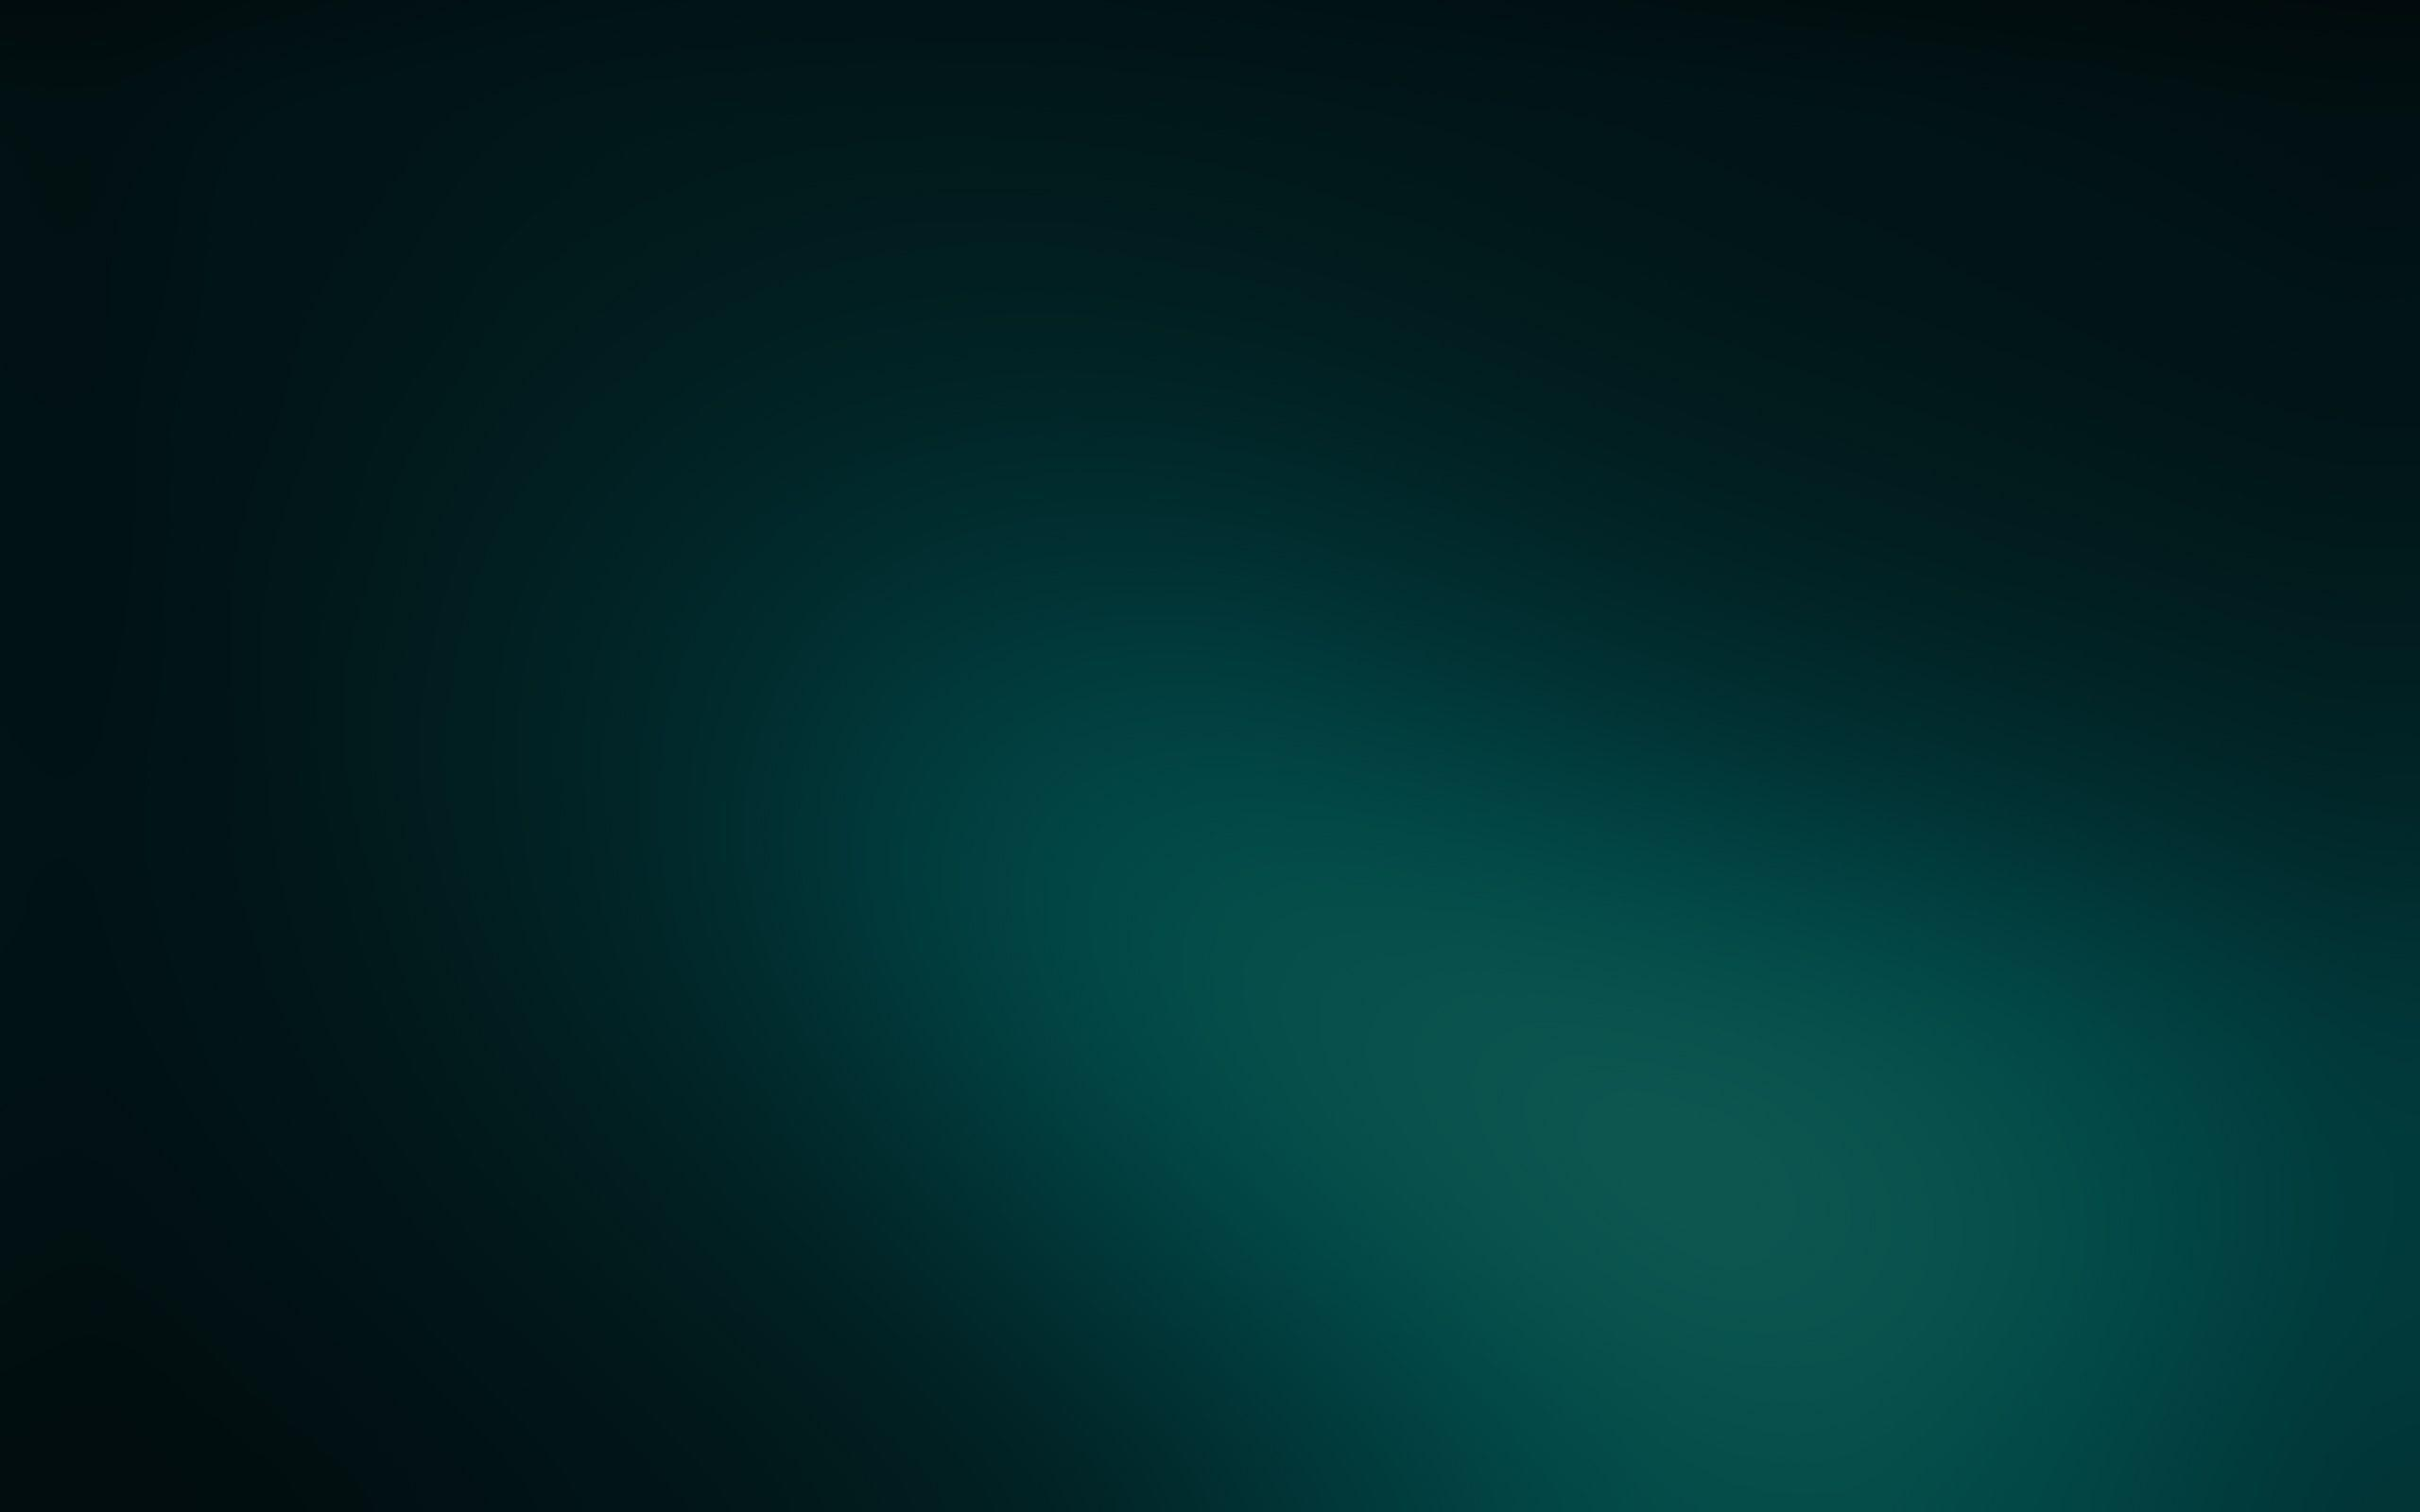 Background Pastel Tosca Gradient Wallpapers - Wallpaper Cave